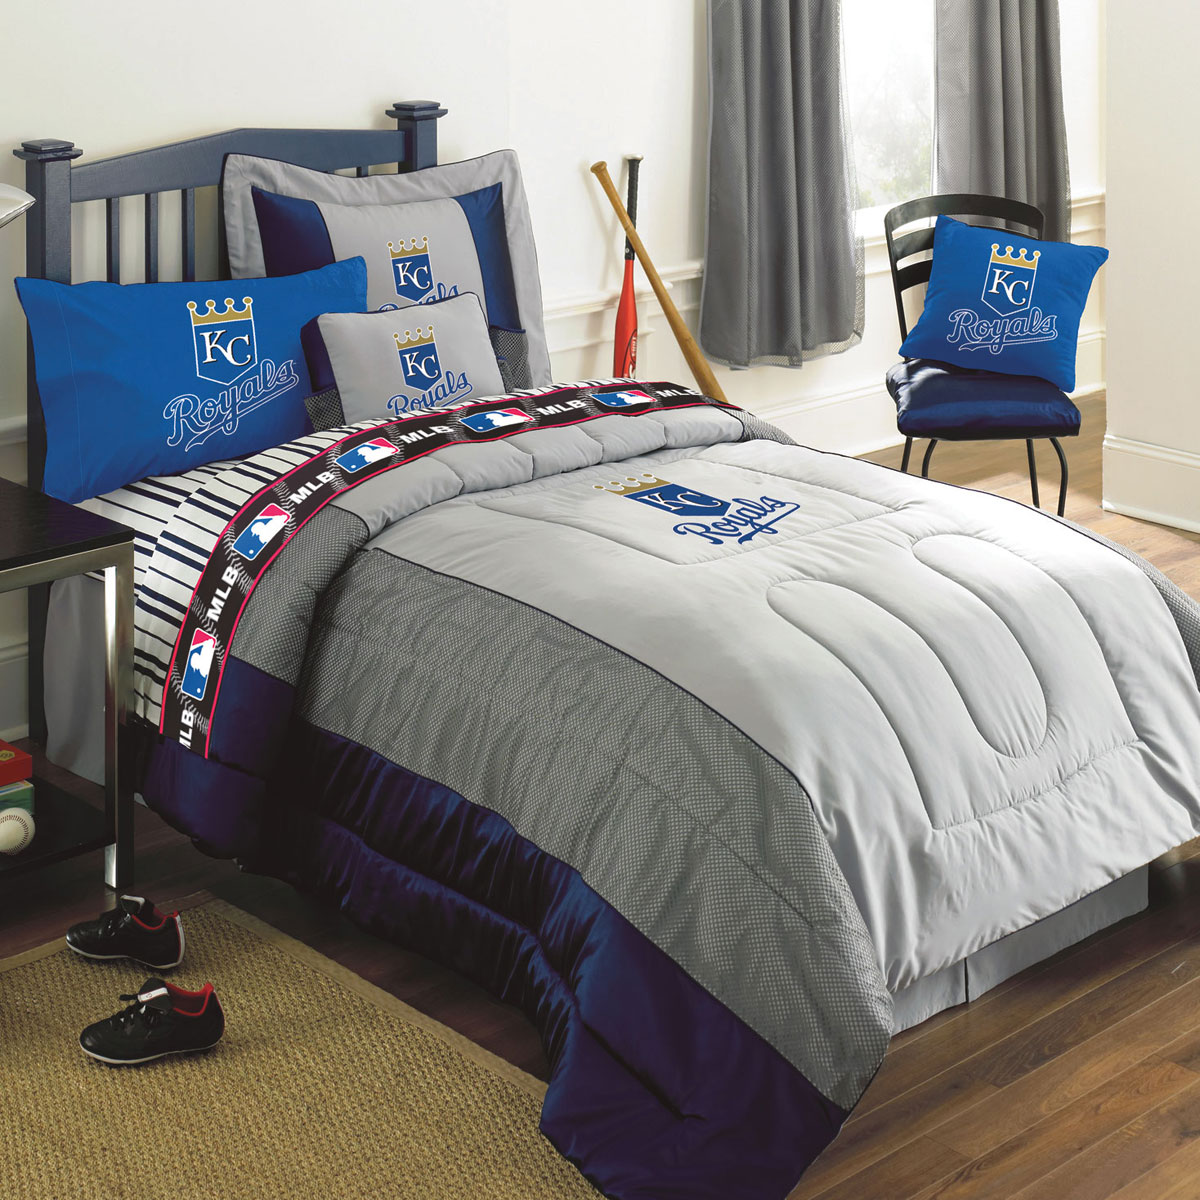 Kansas City Royals MLB Authentic Team Jersey Bedding Twin Size Comforter Sheet Set